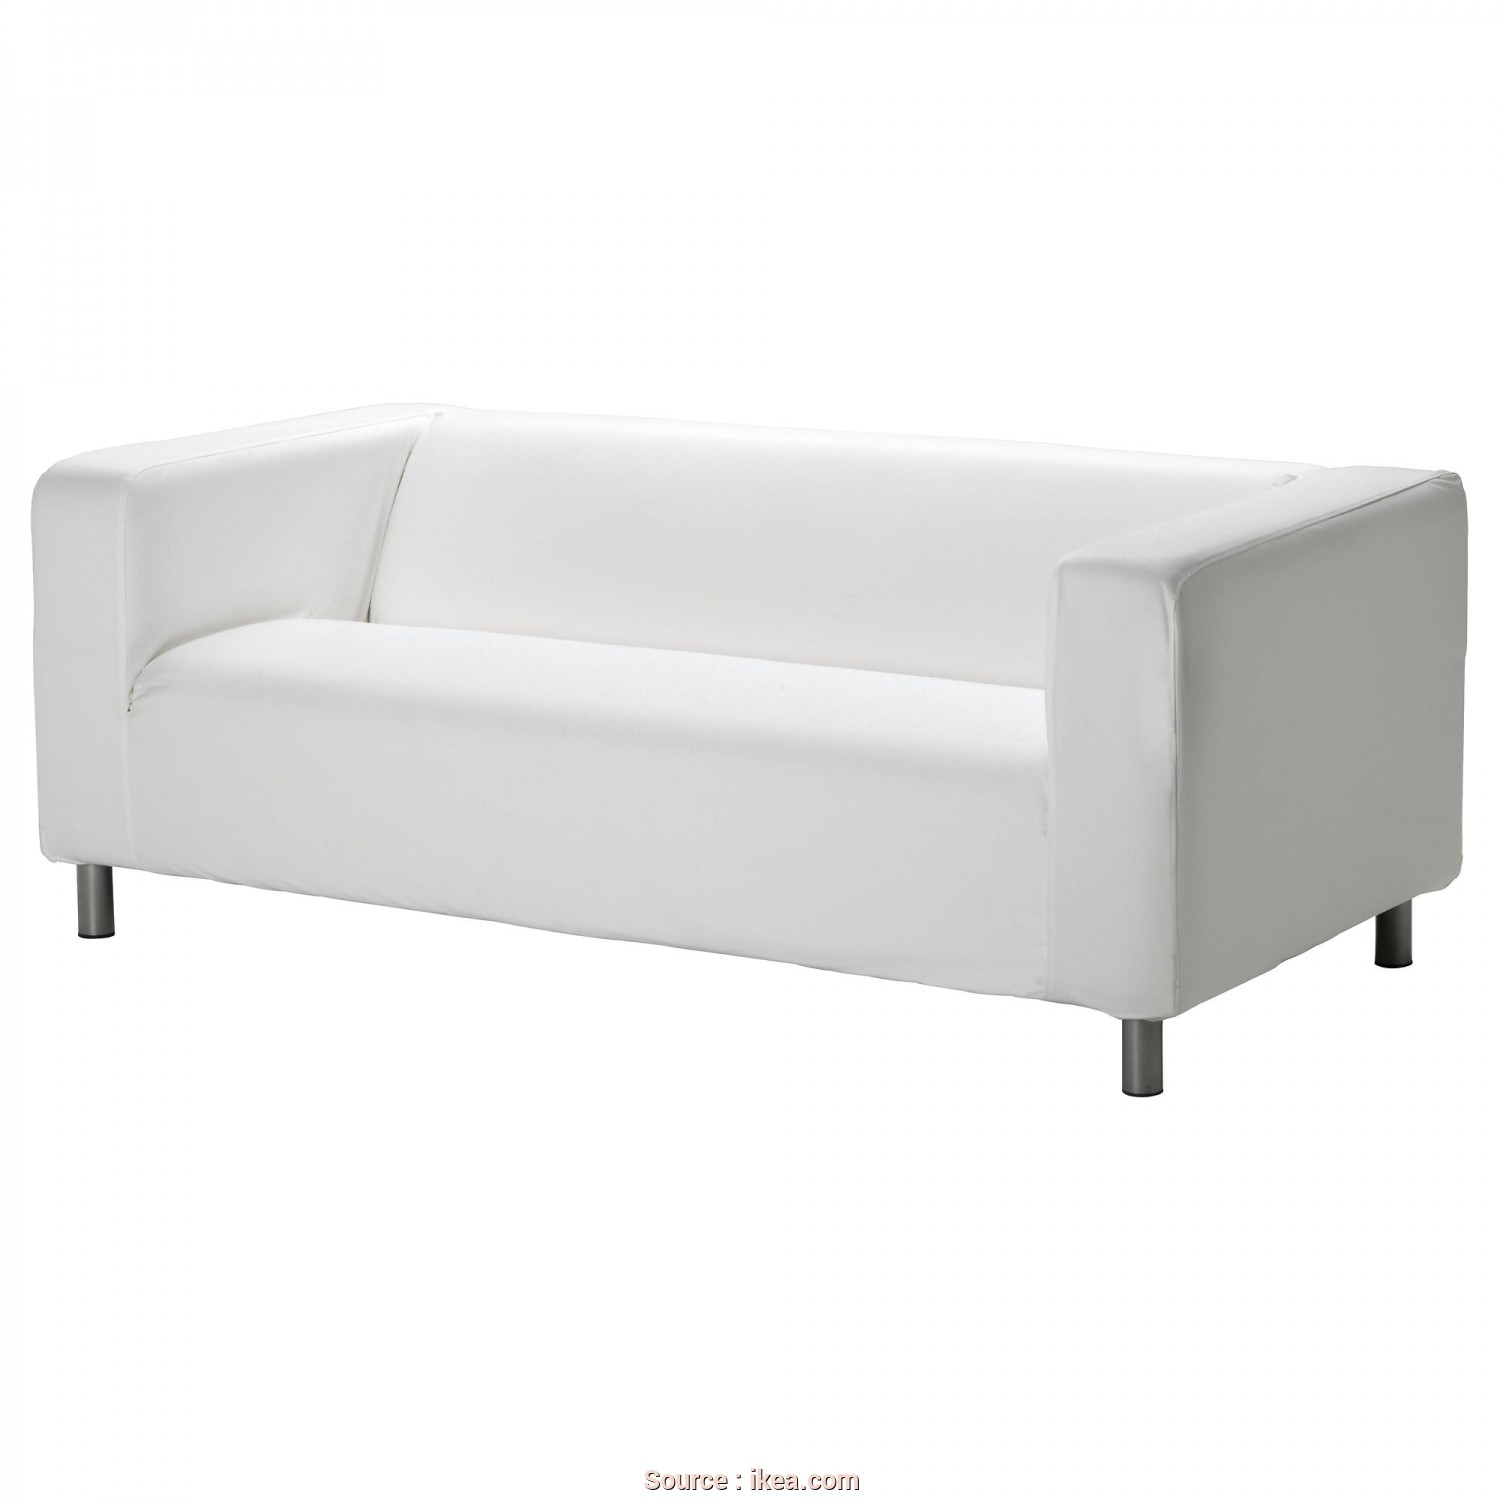 Ikea Klippan Covers Uk, Costoso KLIPPAN Cover, 2-Seat Sofa Ransta White